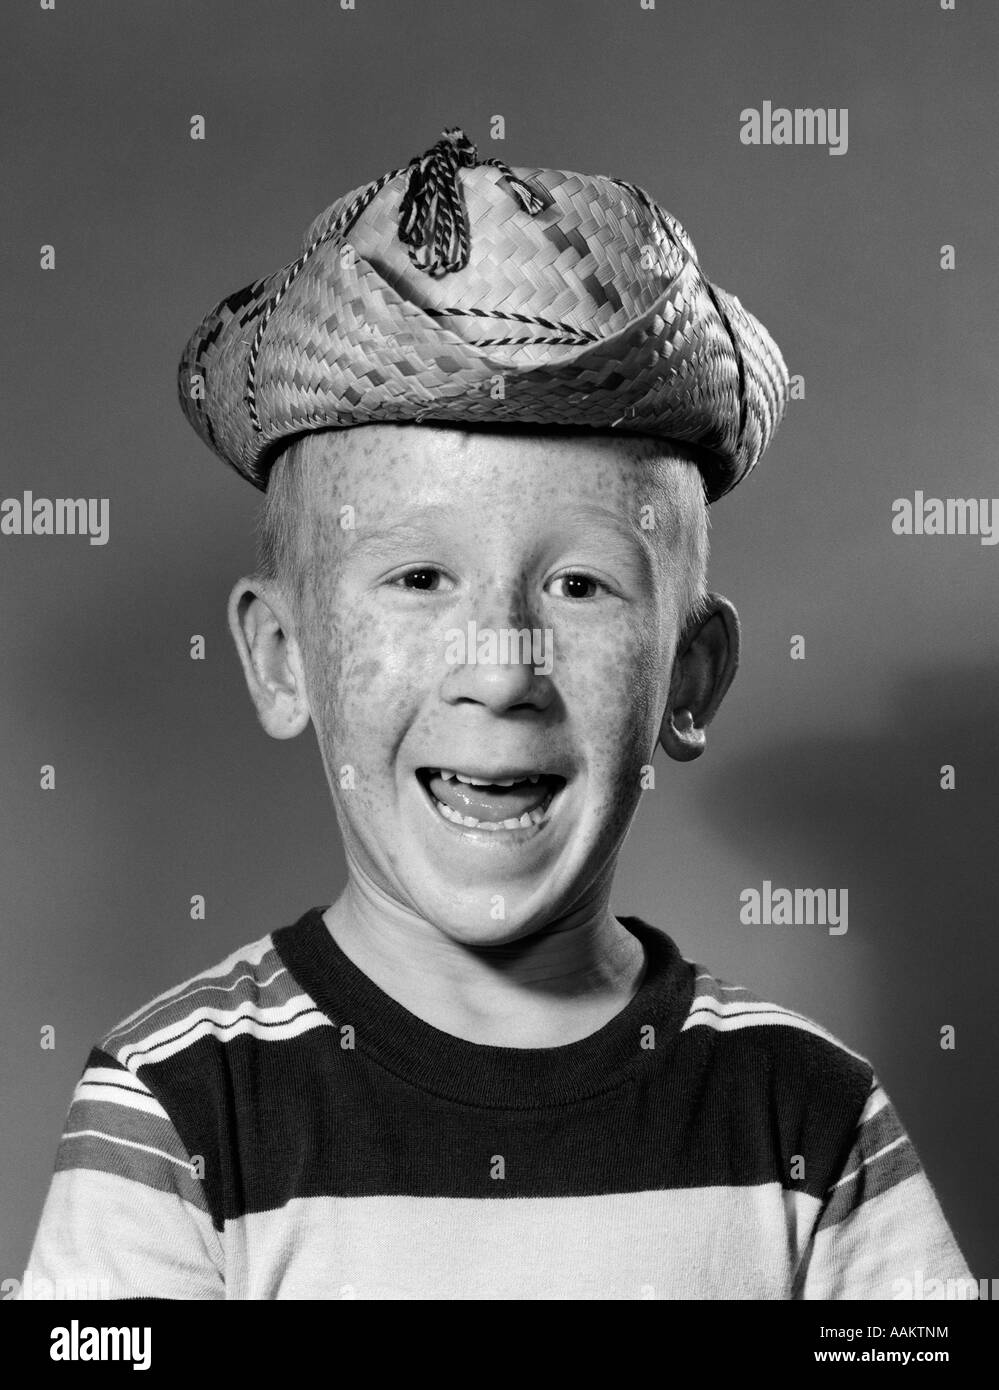 1950s SMILING GOOFY FRECKLE FACED BOY WEARING SILLY TOO SMALL STRAW COWBOY  HAT c14266eda93